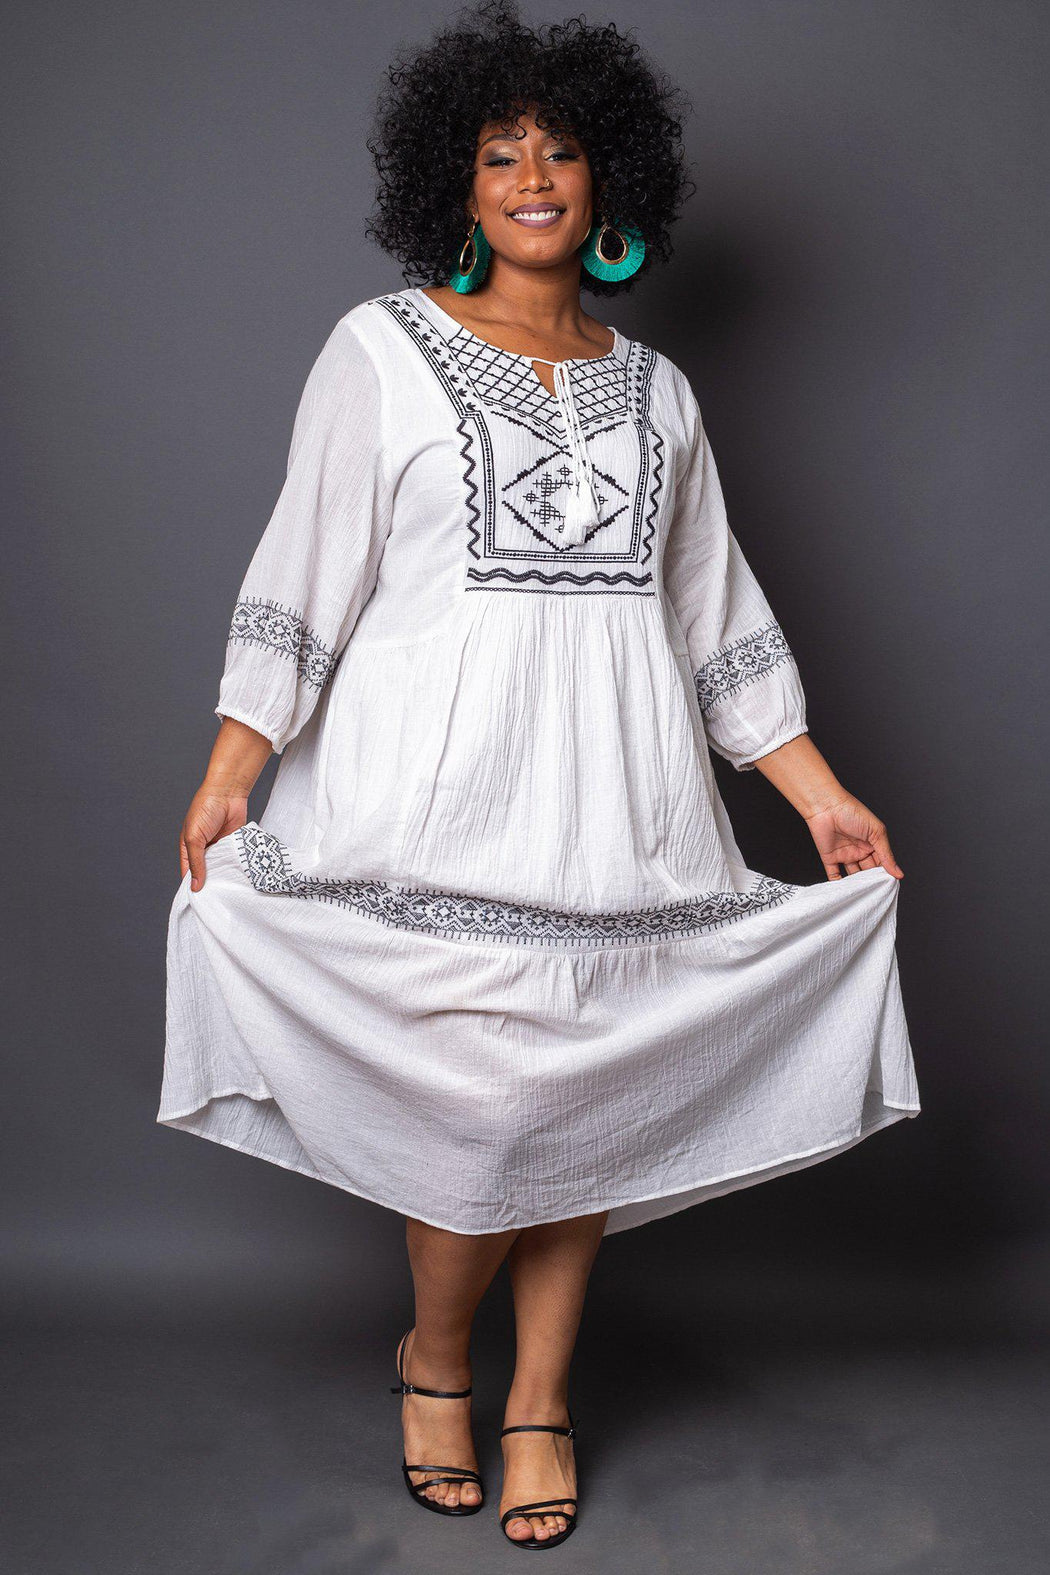 Salma Embroidered Maxi Dress front view on model holding dress at sides